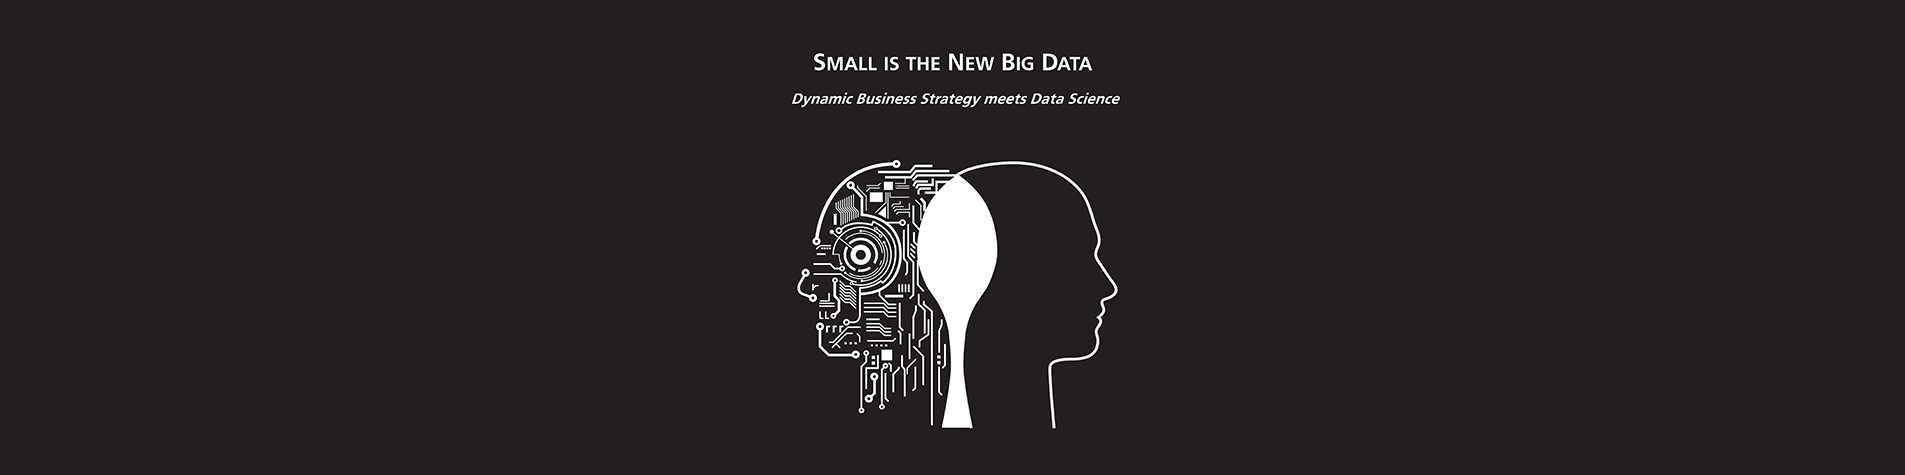 Small_is_the_new_Big_Data_WP